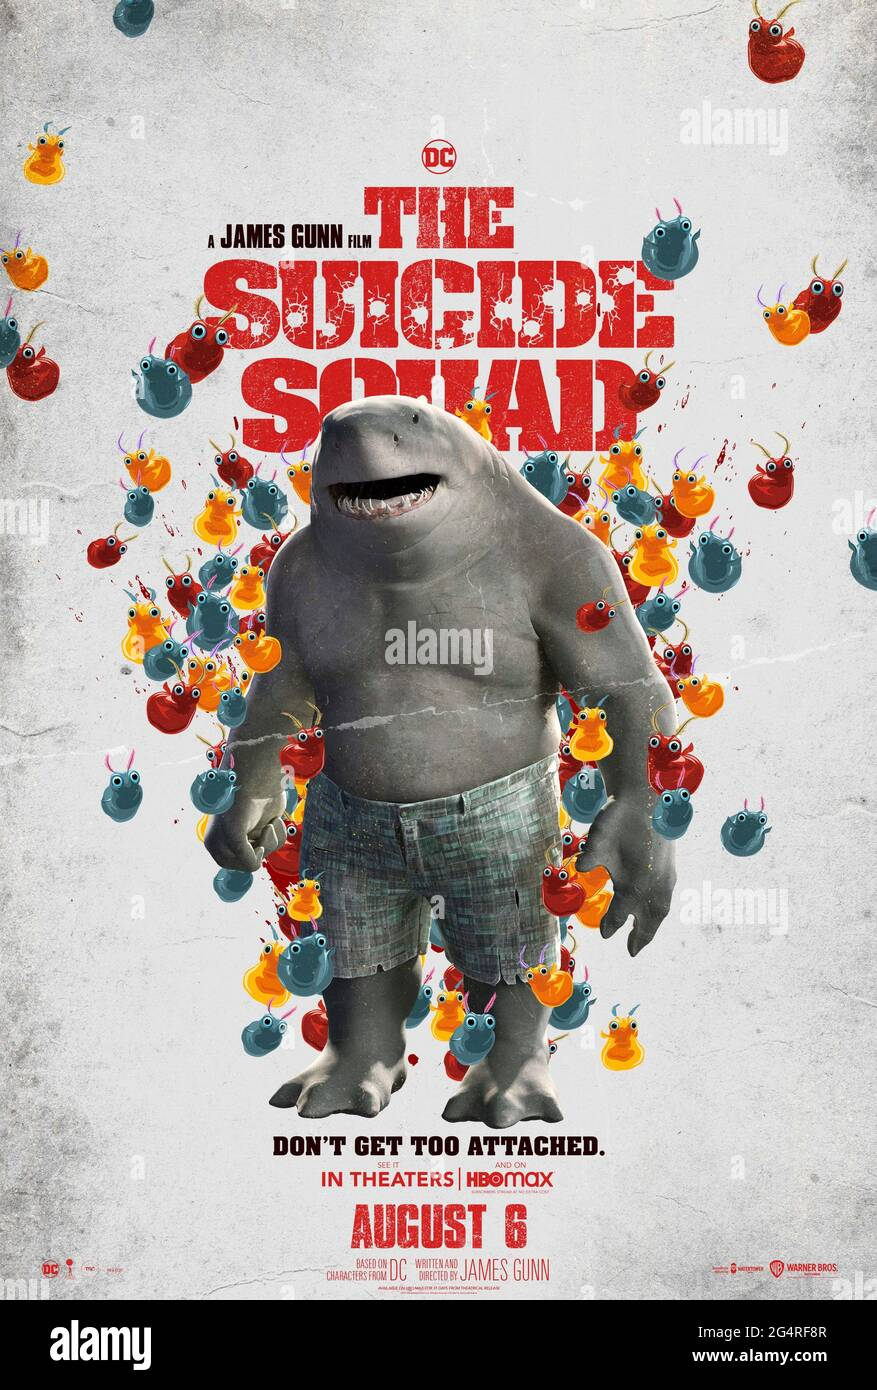 The Suicide Squad 2021 Directed By James Gunn And Starring Sylvester Stallone As King Shark In Jamie Gunn S Take On A Group Of Convicts With Special Powers Sent To Take On A